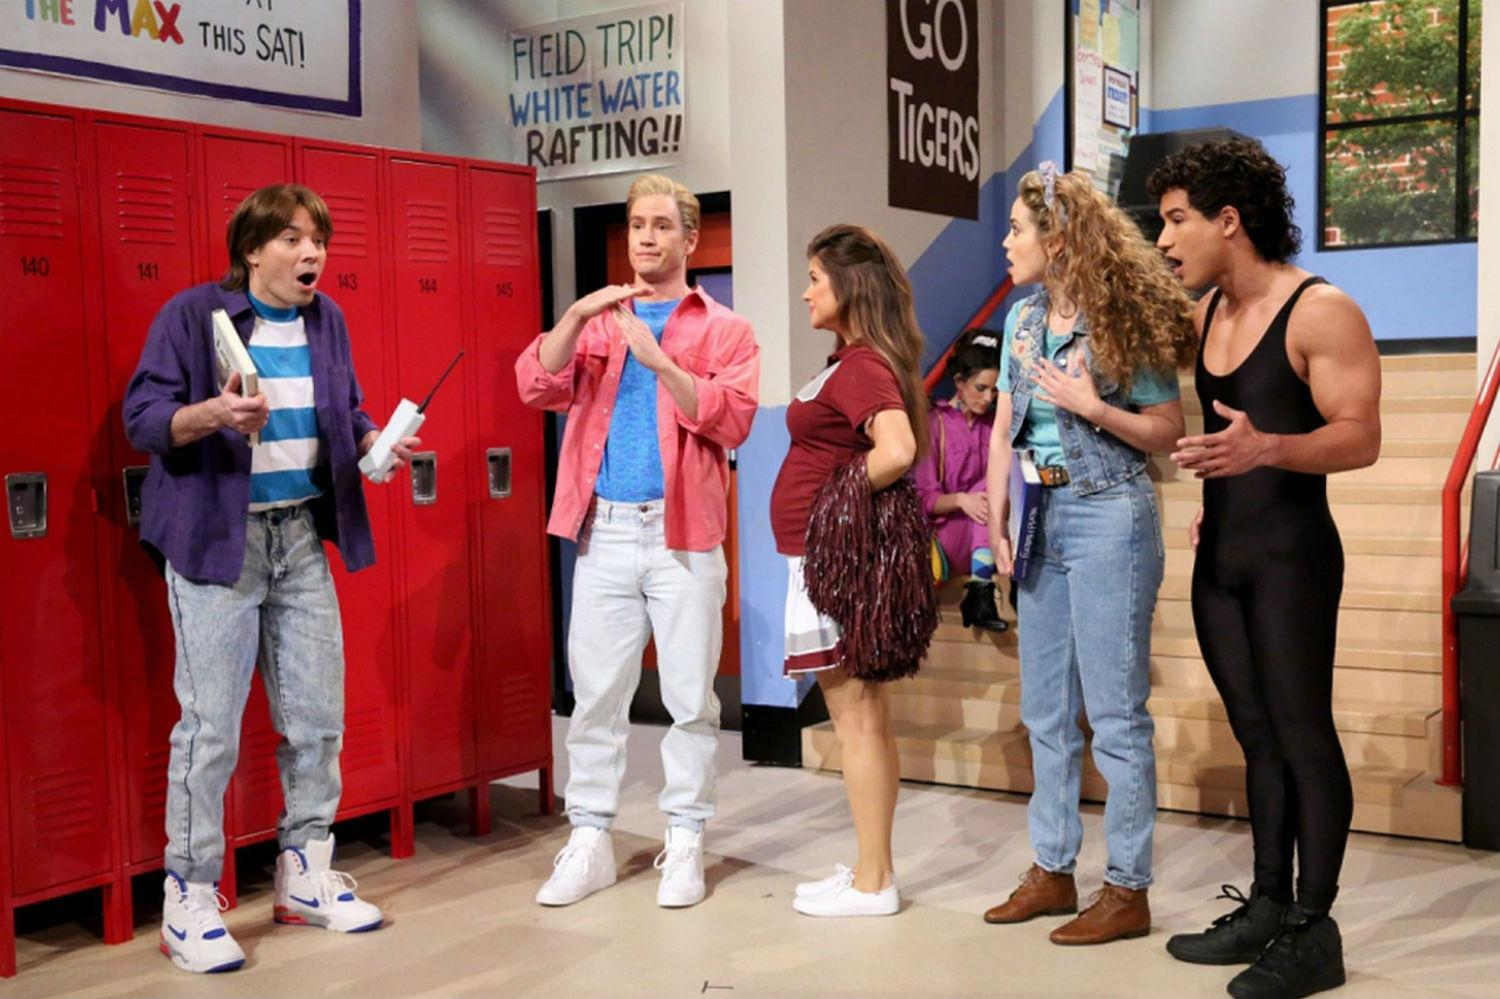 Heads up, preppies! A Saved by the Bell-themed pop-up diner is coming to Chicago